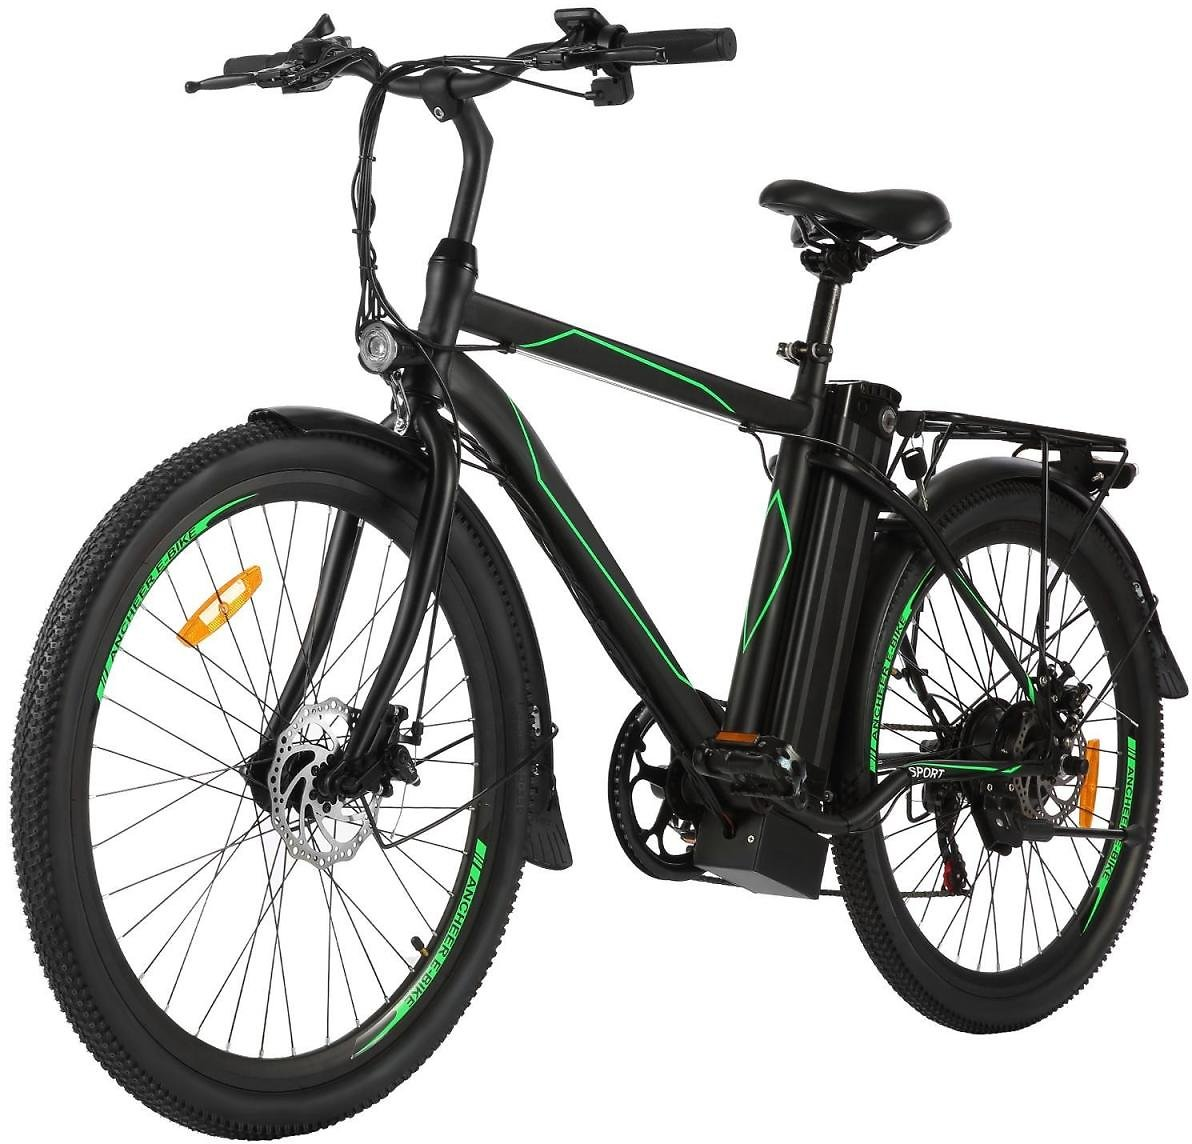 26in Electric Bike Power Assist Commuter Bicycle,15.5mph Ebike with 10Ah Battery, Professional 21 Speed Electric Mountain Bicycl